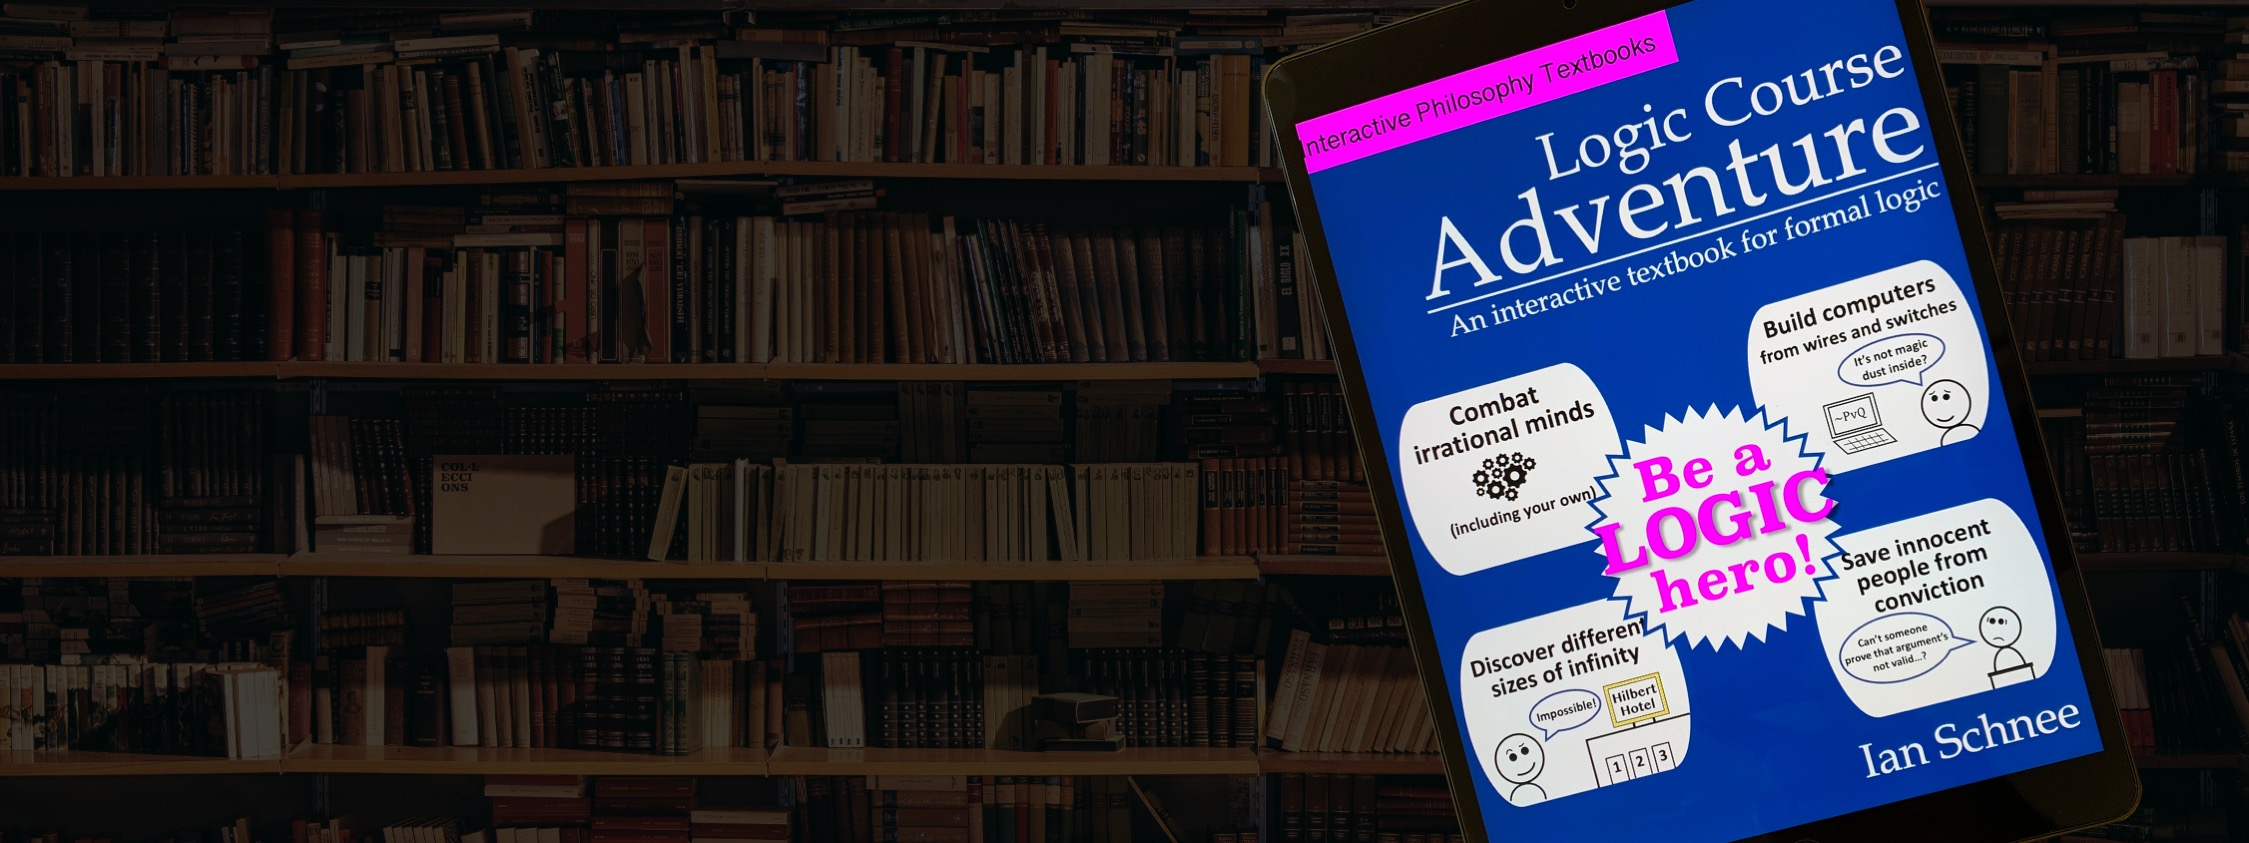 Fully Online and 100% Auto-Graded Just $8.99 per Student